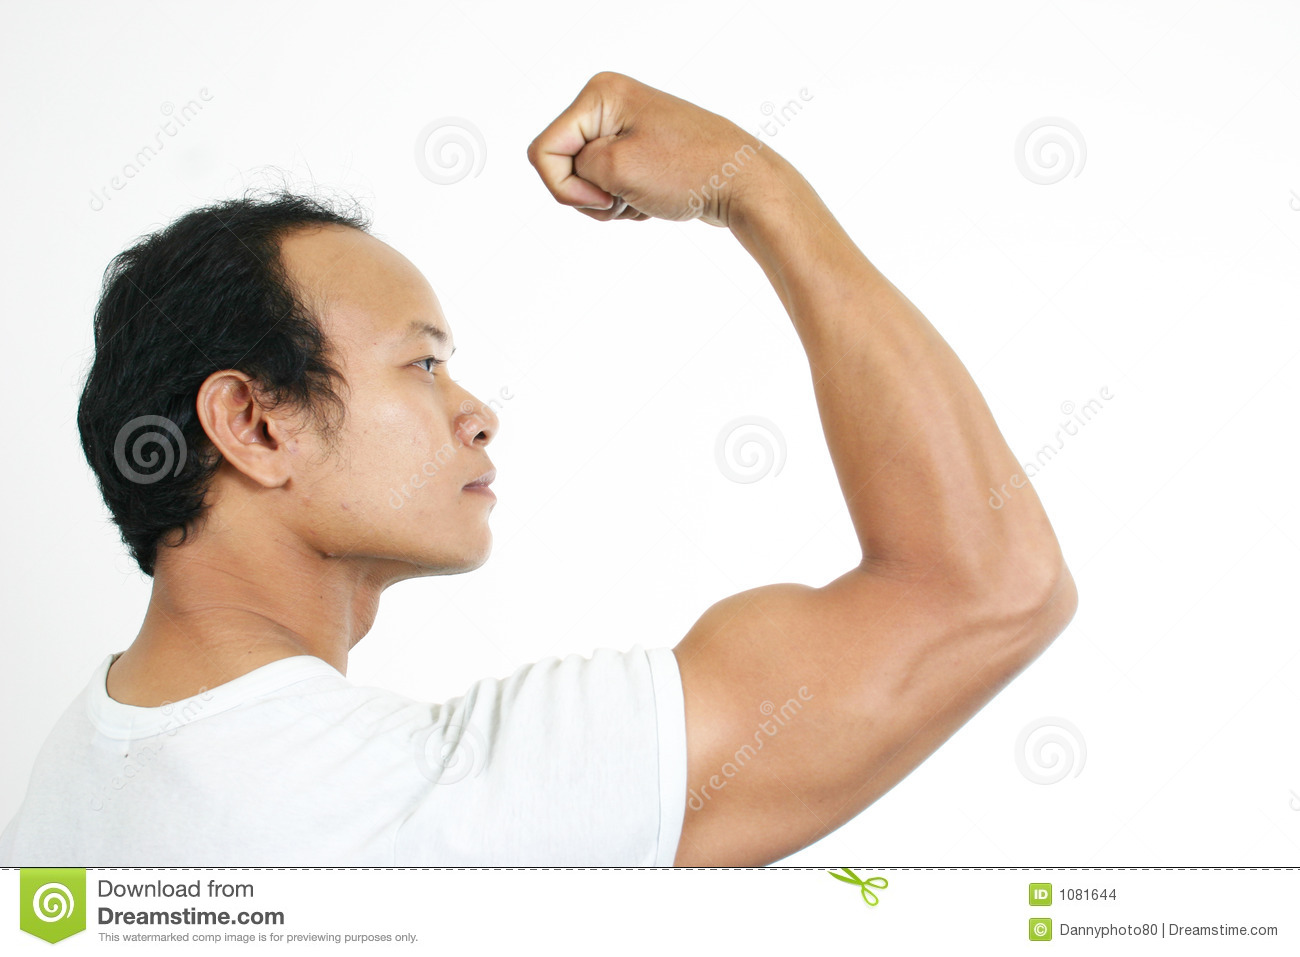 Muscle Guy 1 Stock Images   Image  1081644